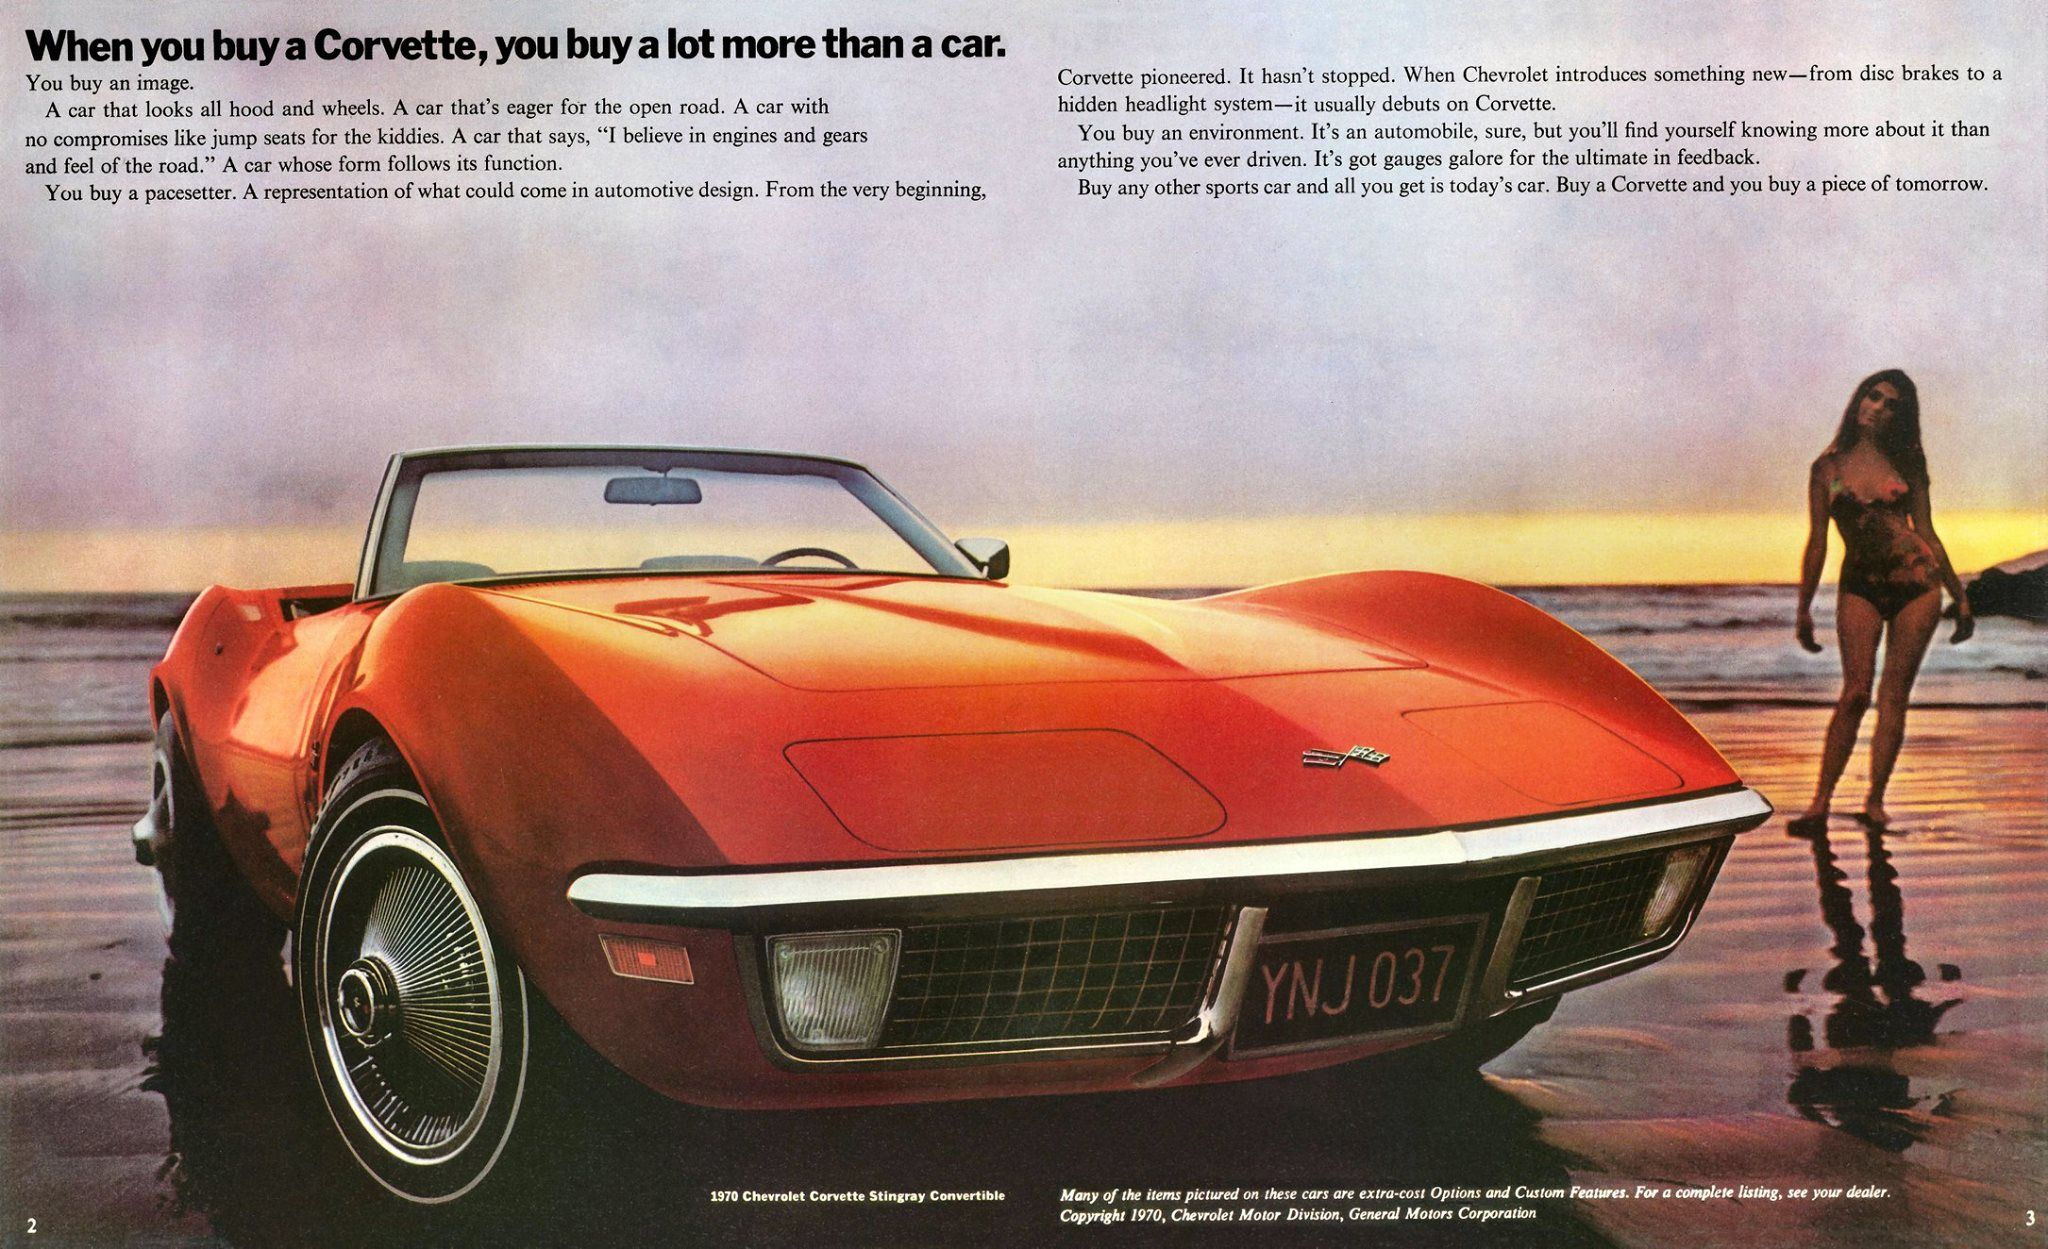 1970 Corvette Vintage Corvette Advertising